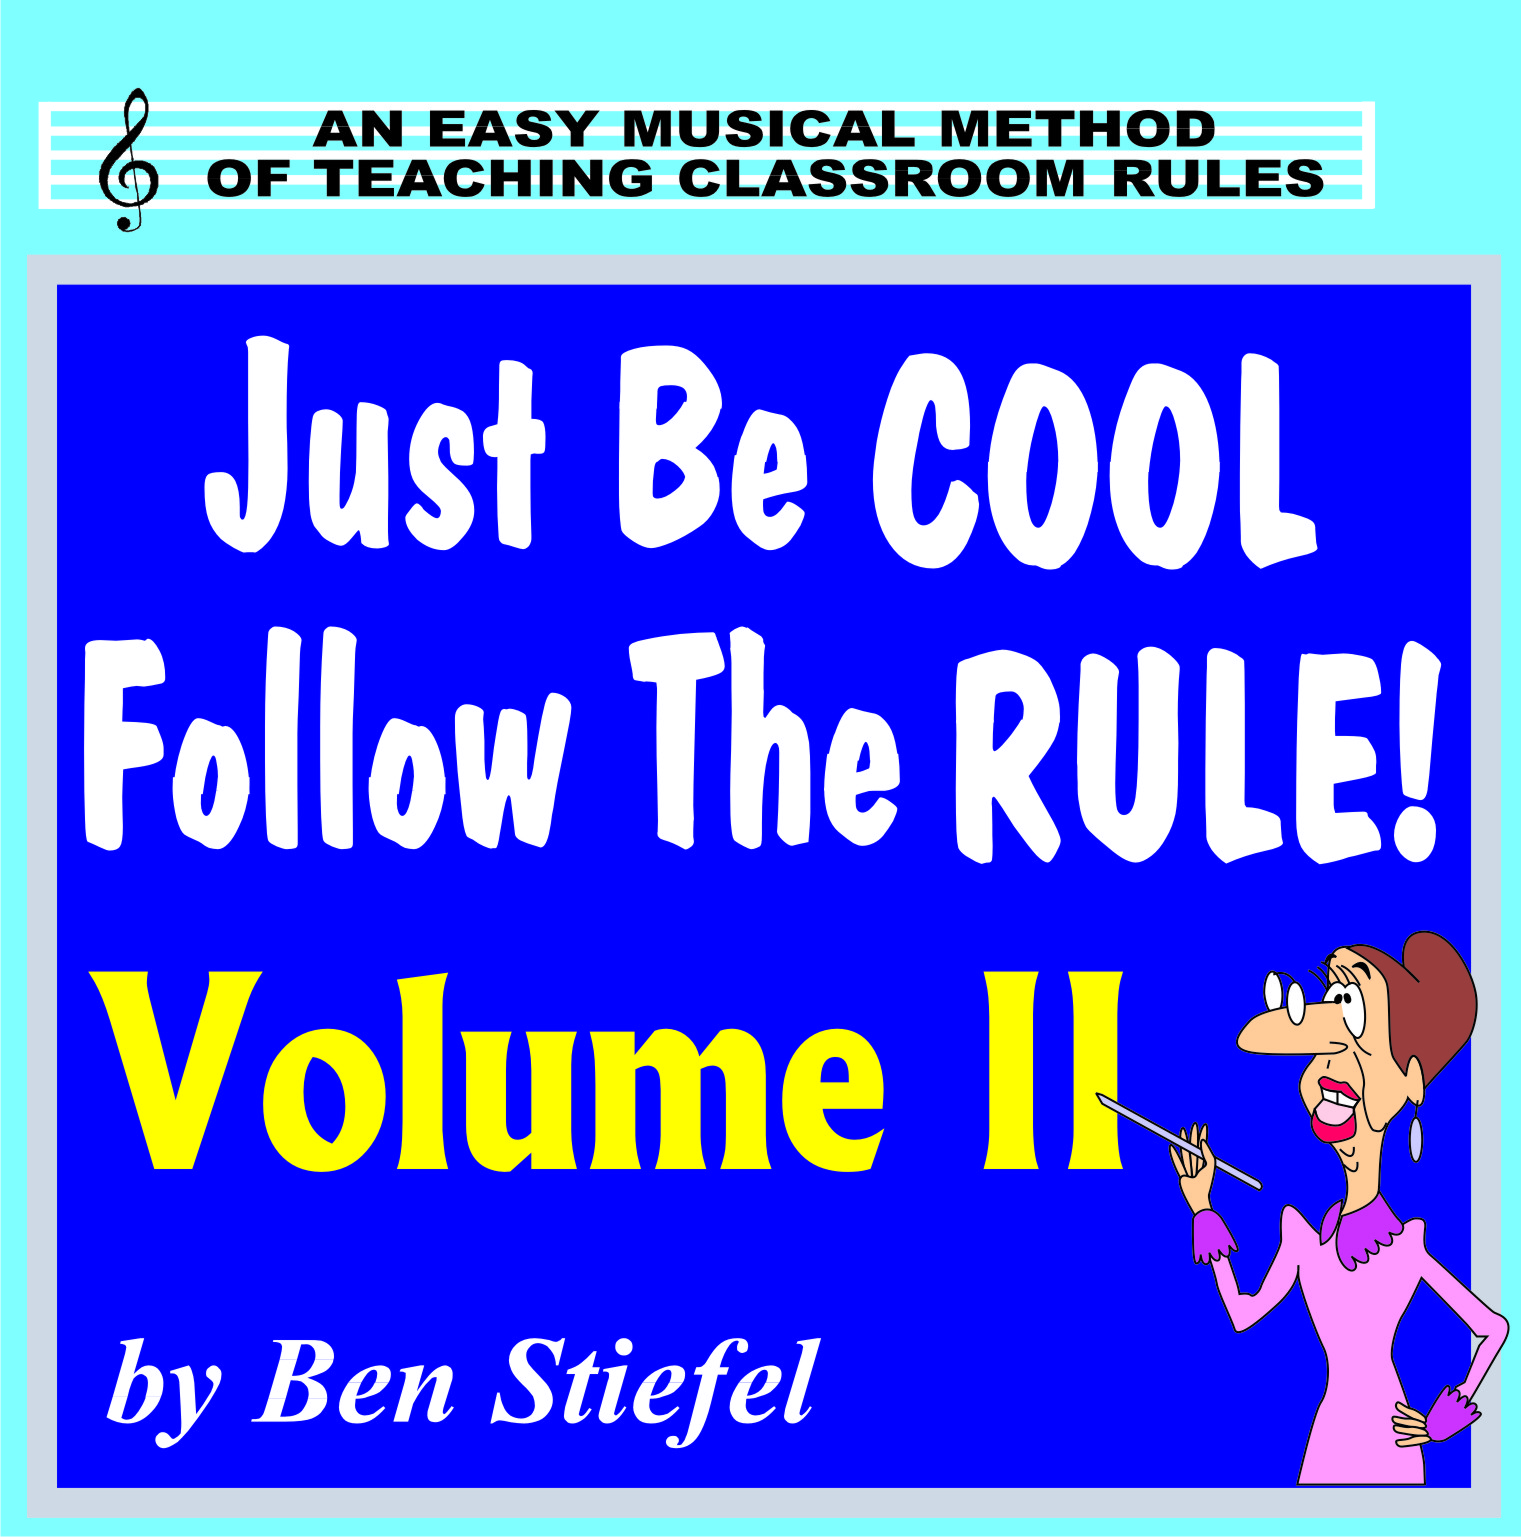 Just Be Cool - Follow the Rule! Volume II